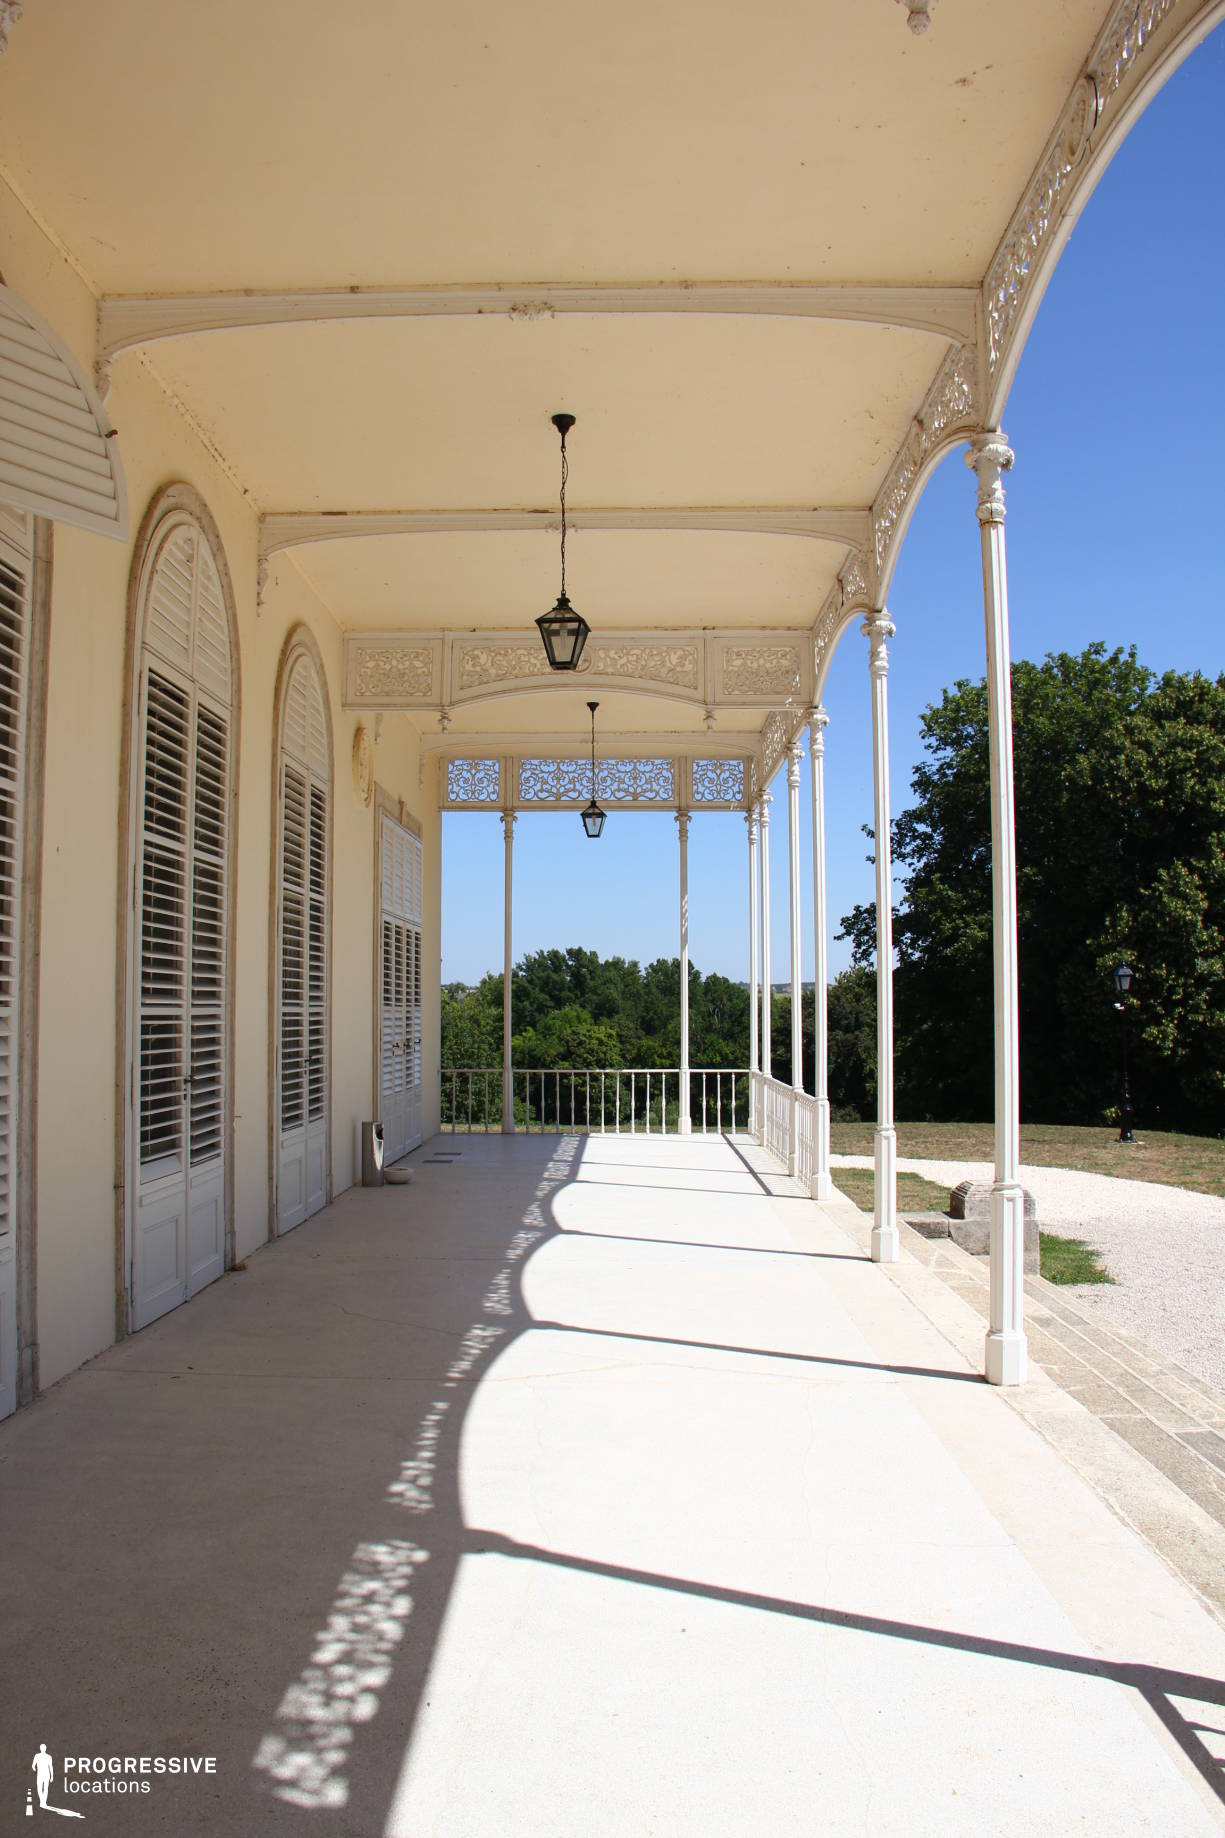 Locations in Hungary: Karolyi Mansion, Loggia